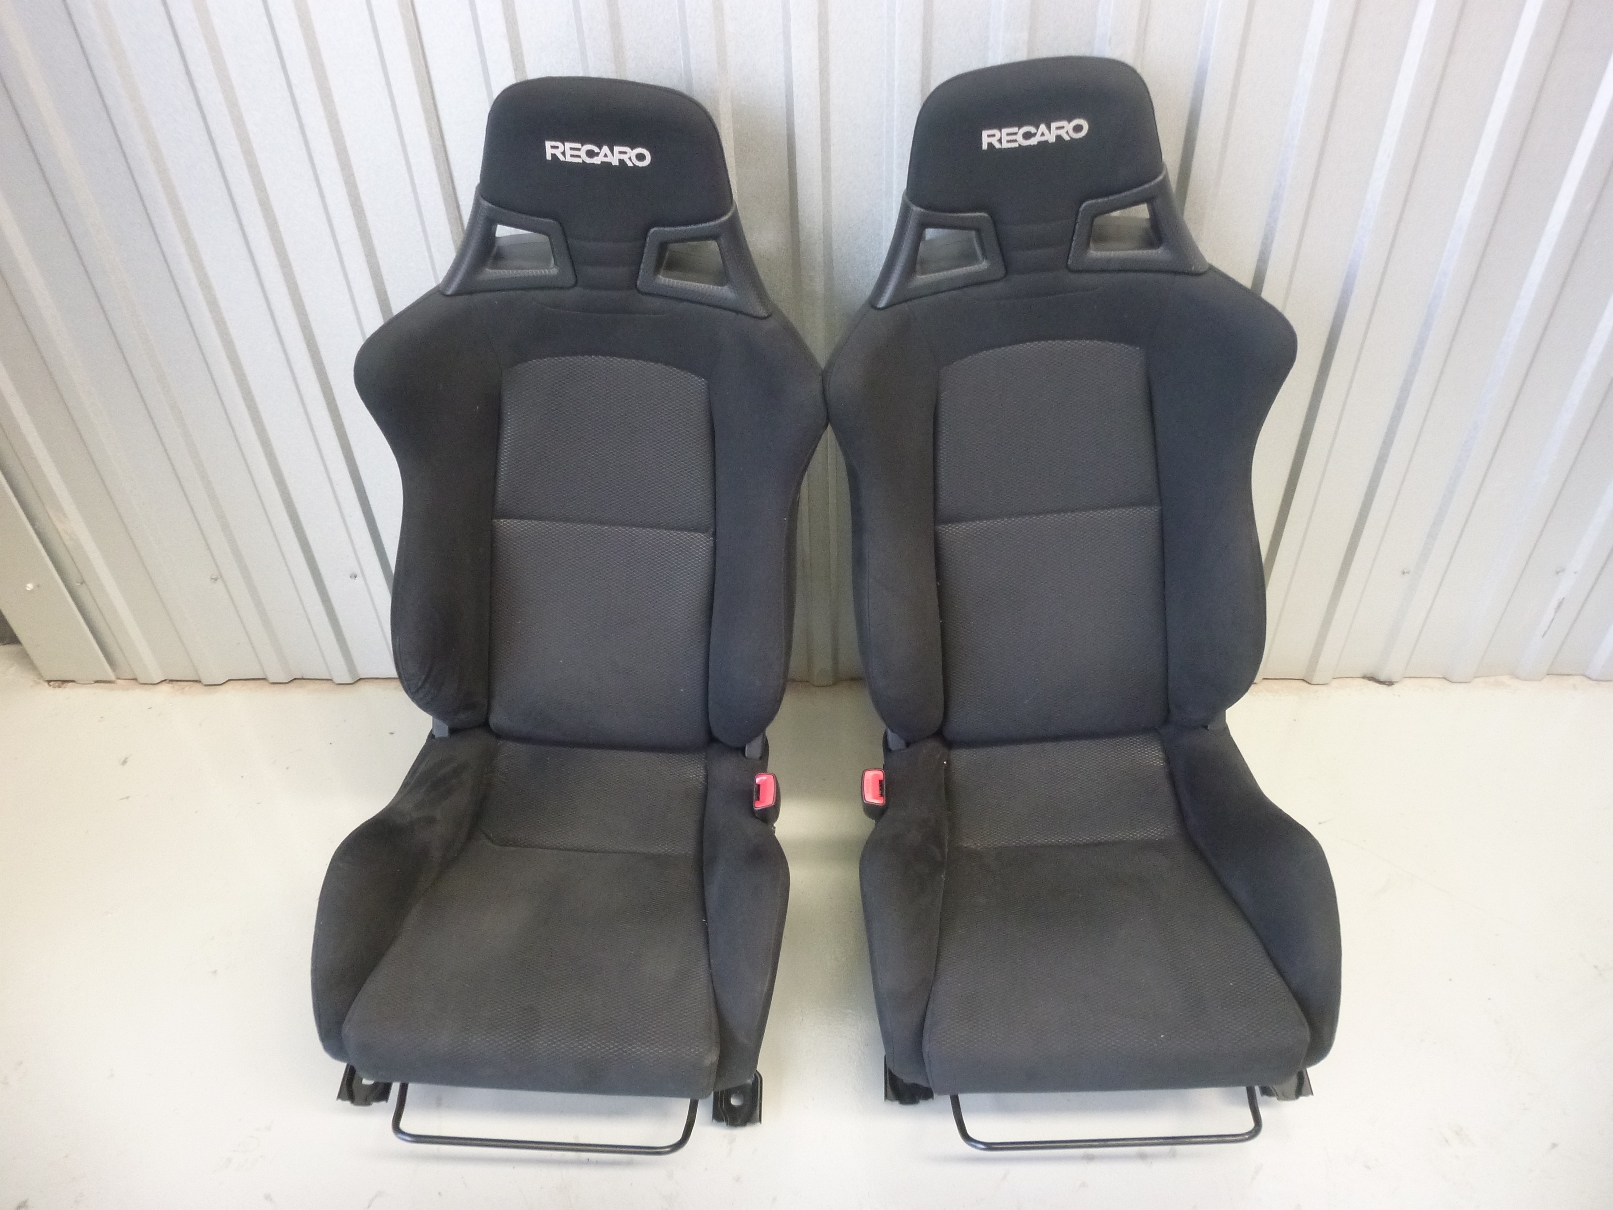 mitsubishi lancer evo x 10 cz4a recaro factory front seats. Black Bedroom Furniture Sets. Home Design Ideas